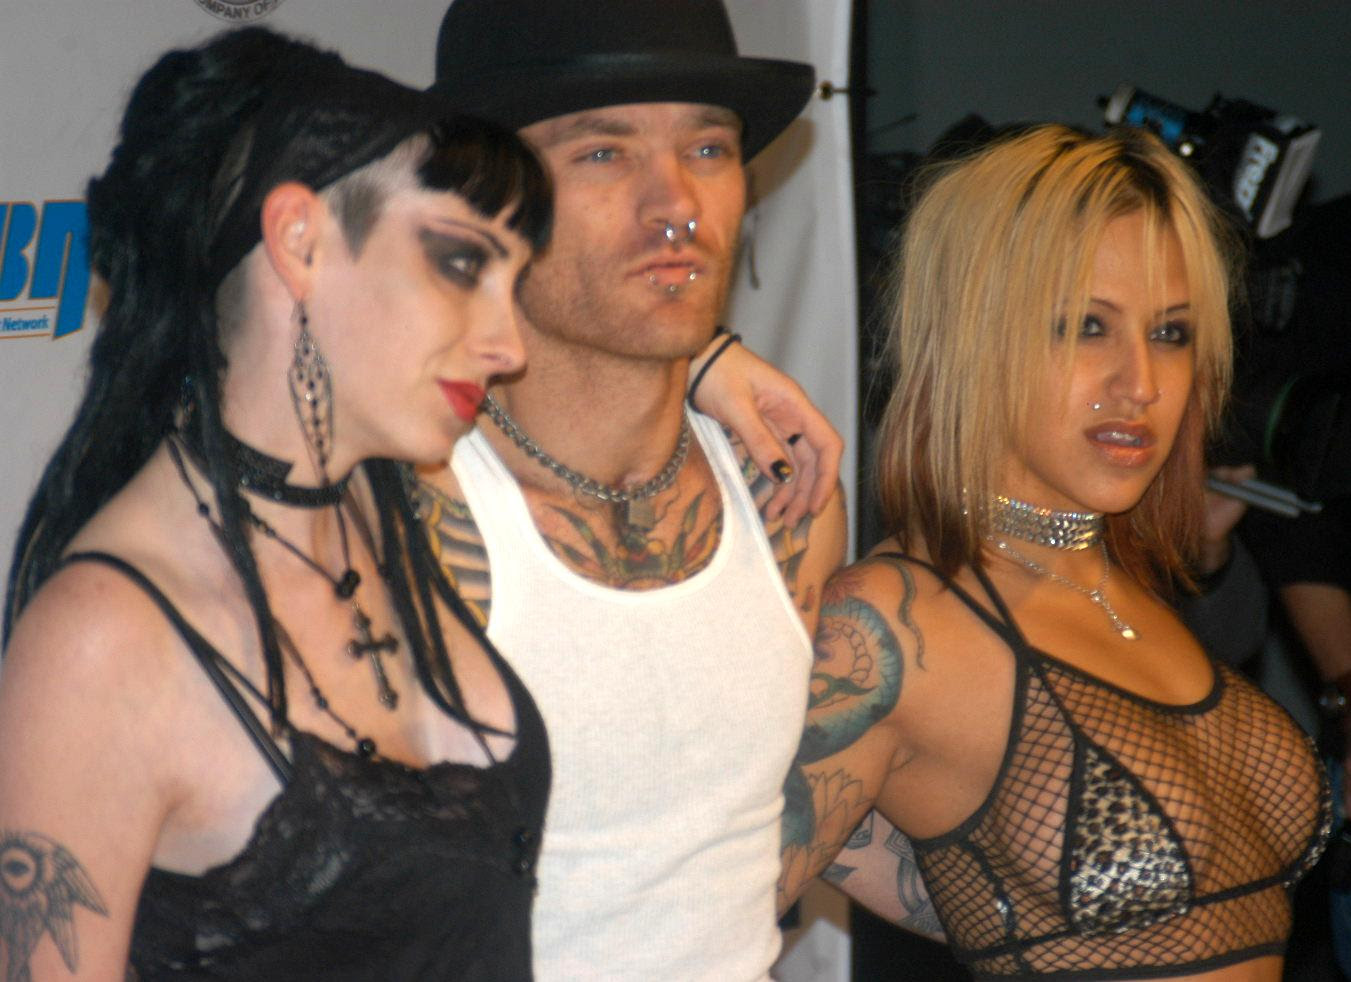 Rob_Rotten_and_co_at_West_Coast_Party